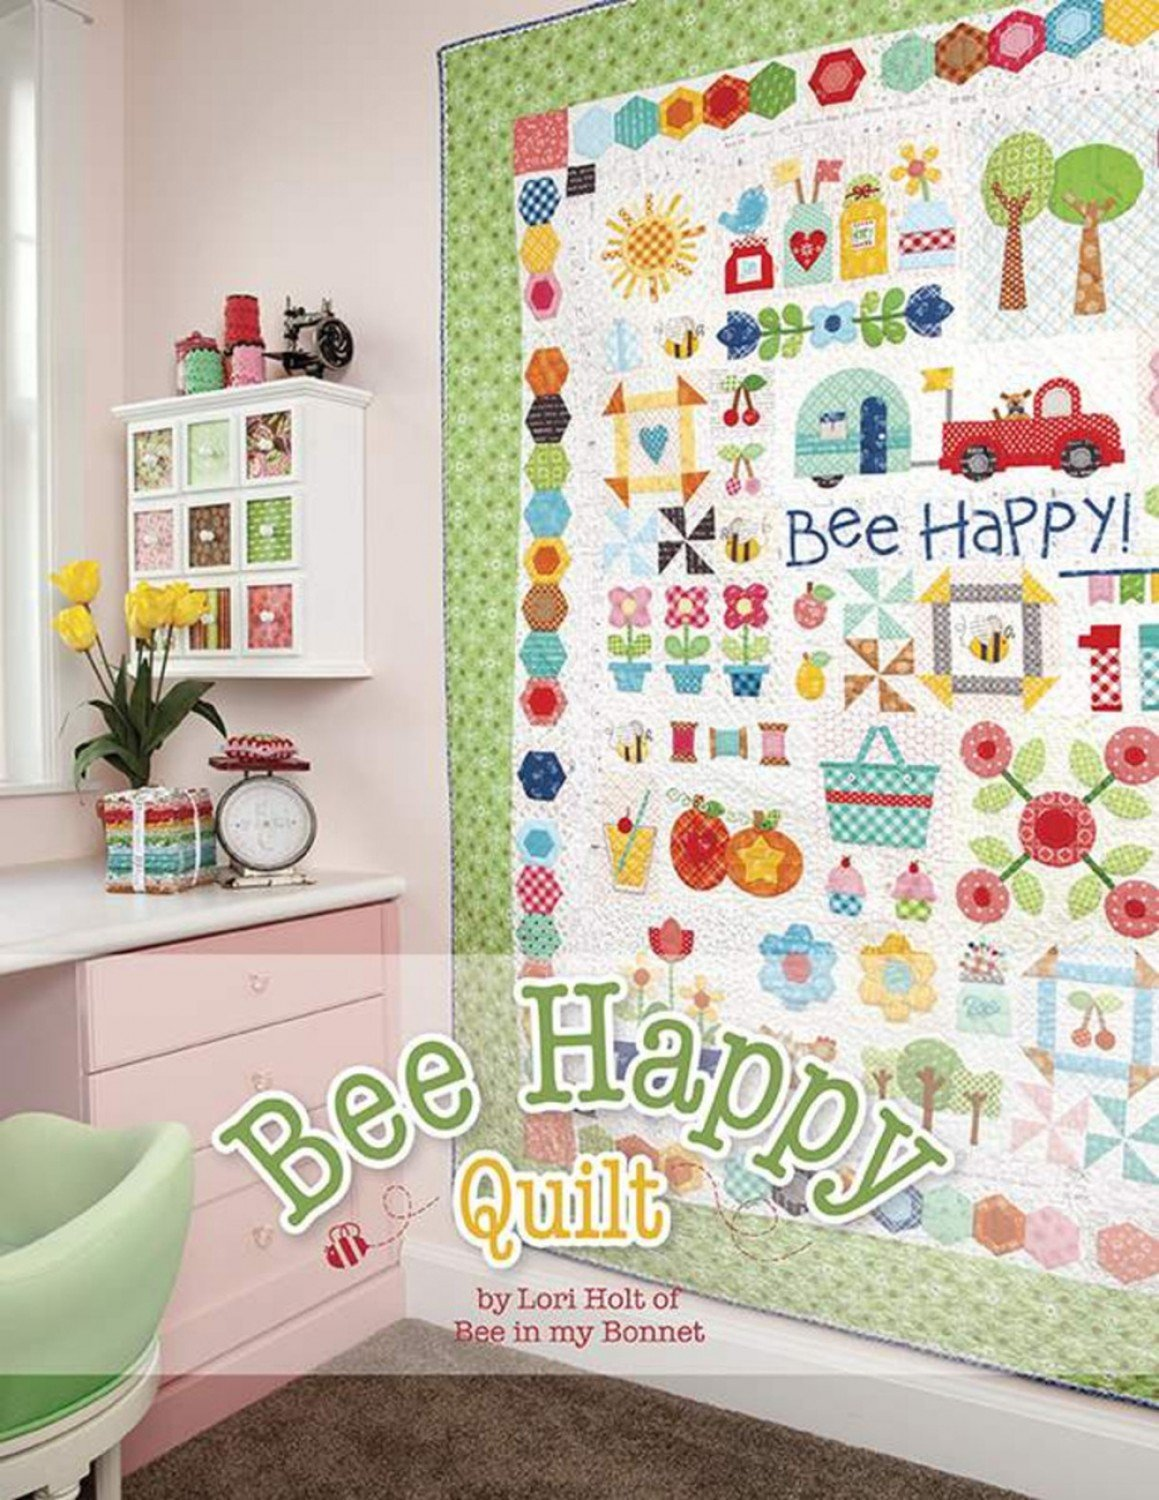 Bee Happy Quilt Pattern Book by Lori Holt of Bee in my Bonnet Co